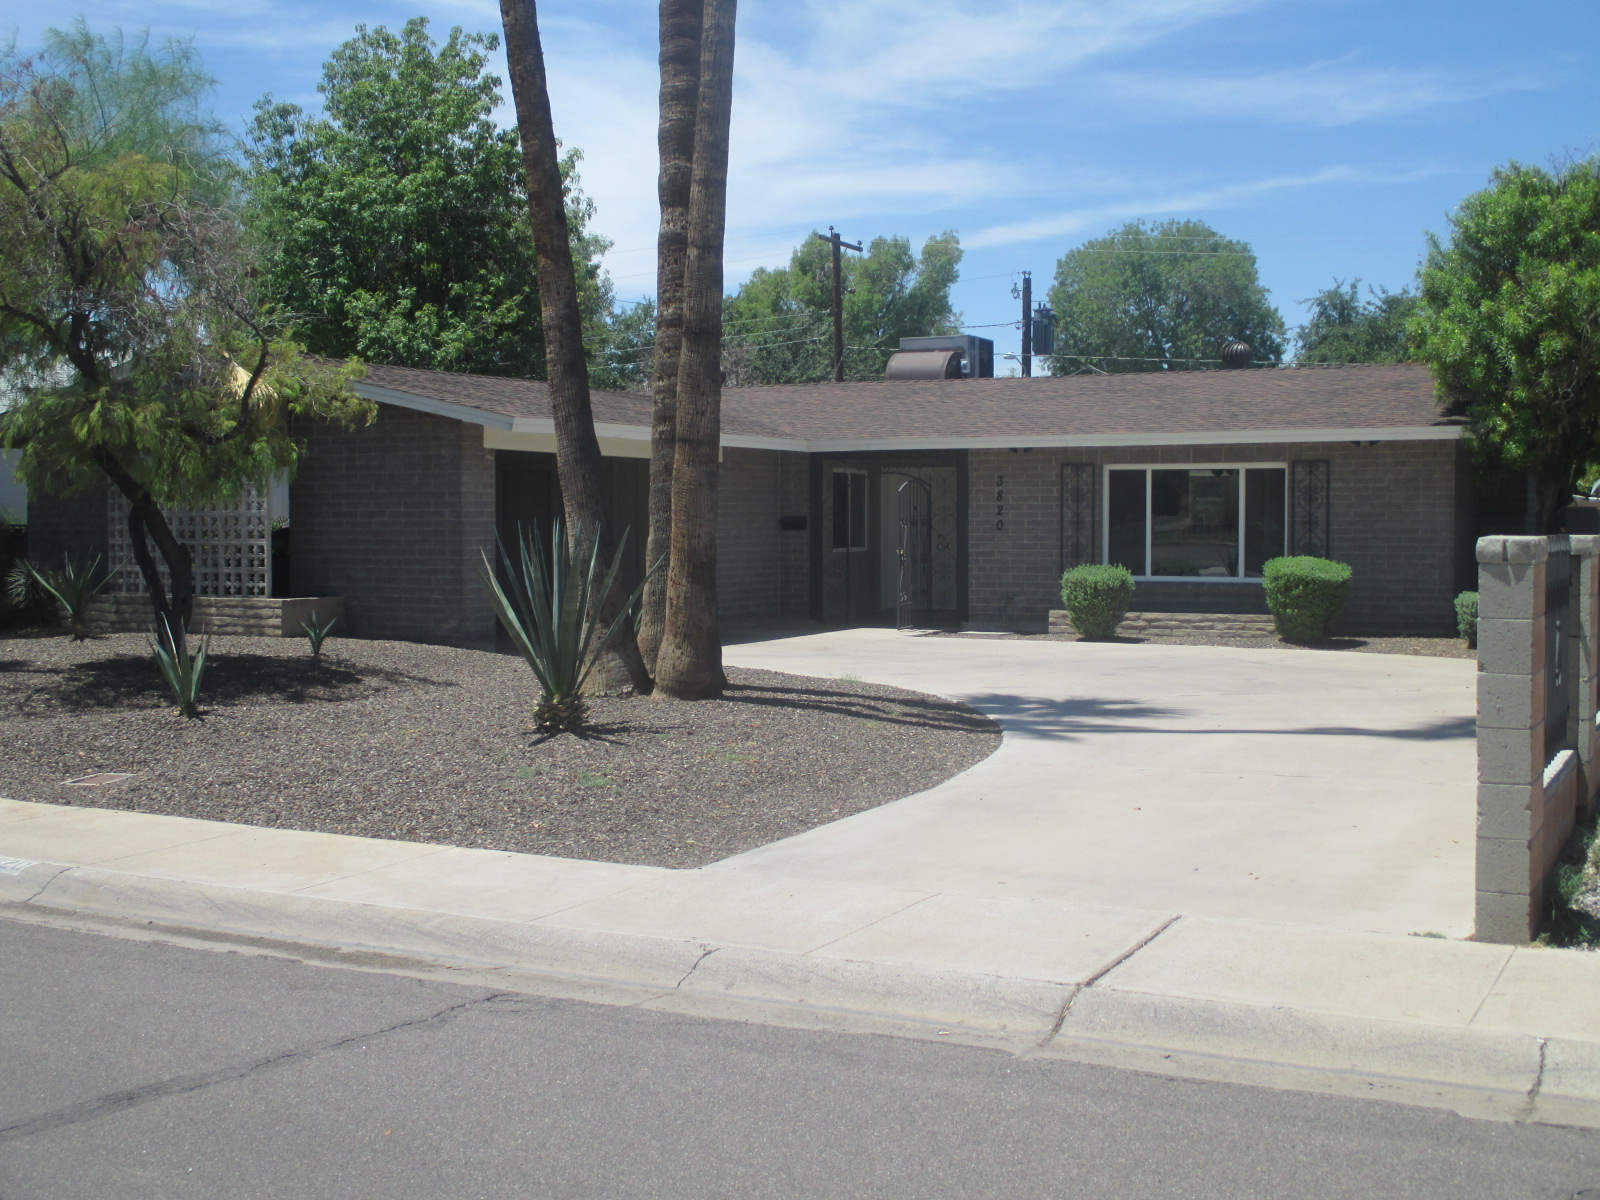 6 bedrm house for rent tempe az krk realty and management for 6 bedroom homes for rent